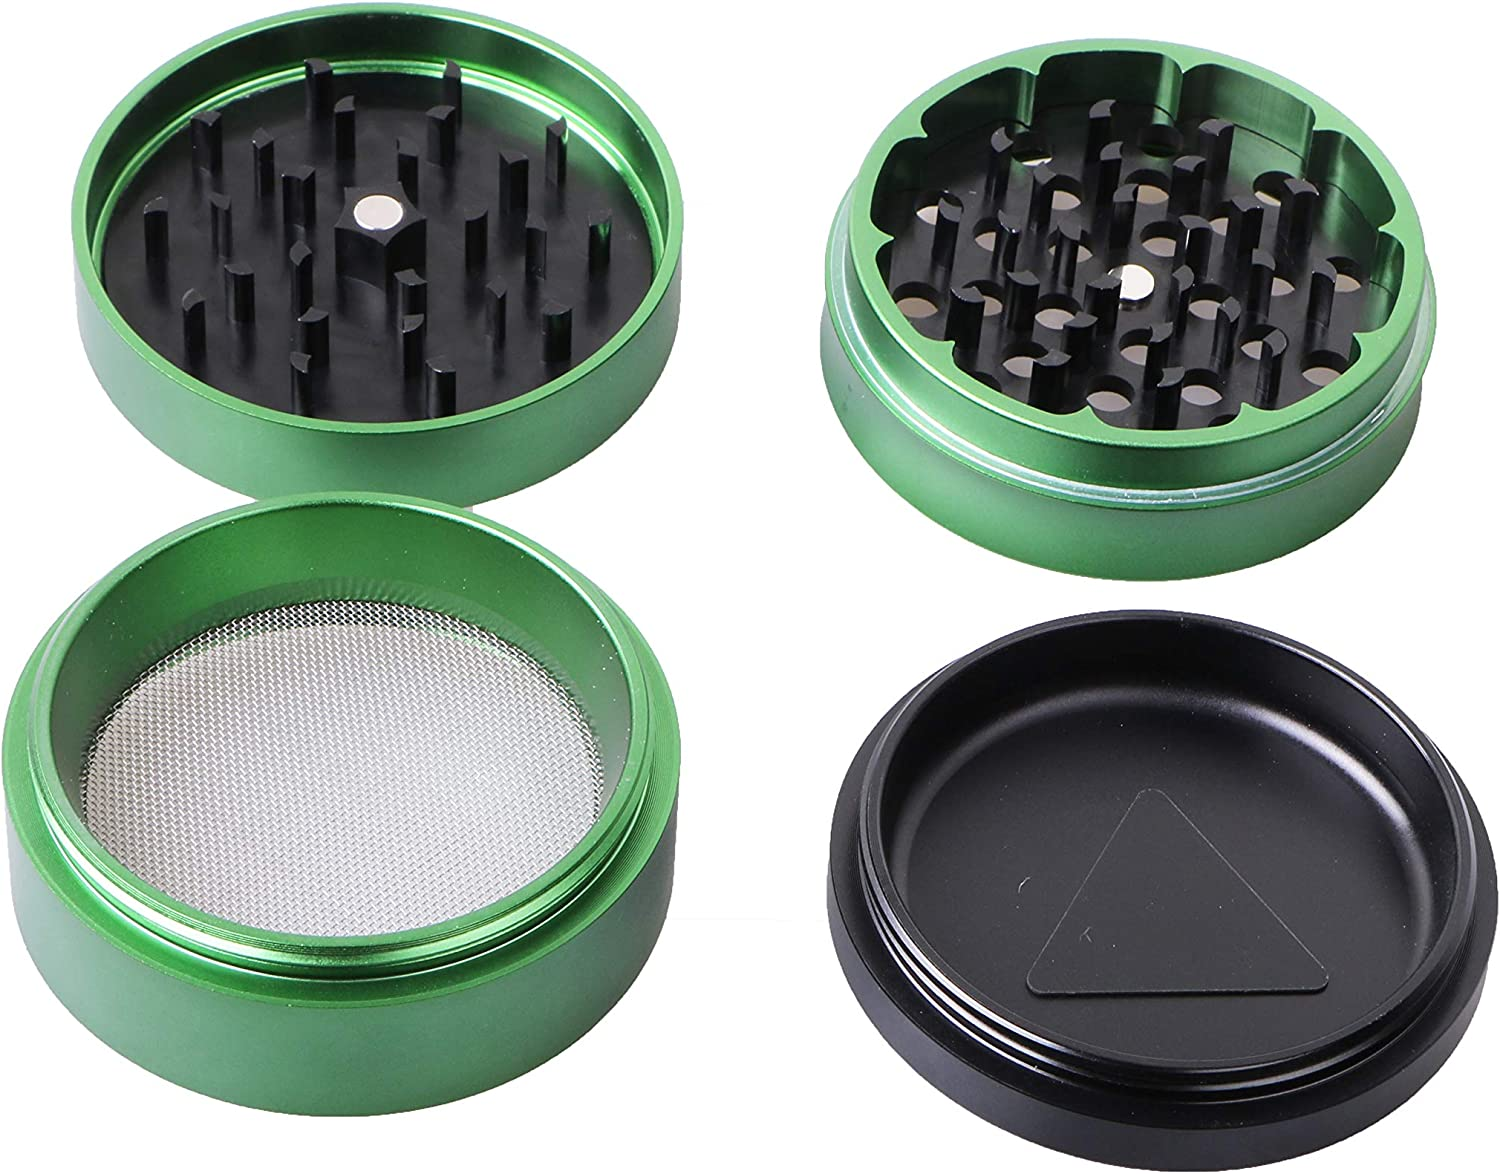 4 Piece Premium Aluminum Herb Grinders,Speaker Design Metal Tobacco Grinder with Sifter and Magnetic Top,2.4inch,Gold